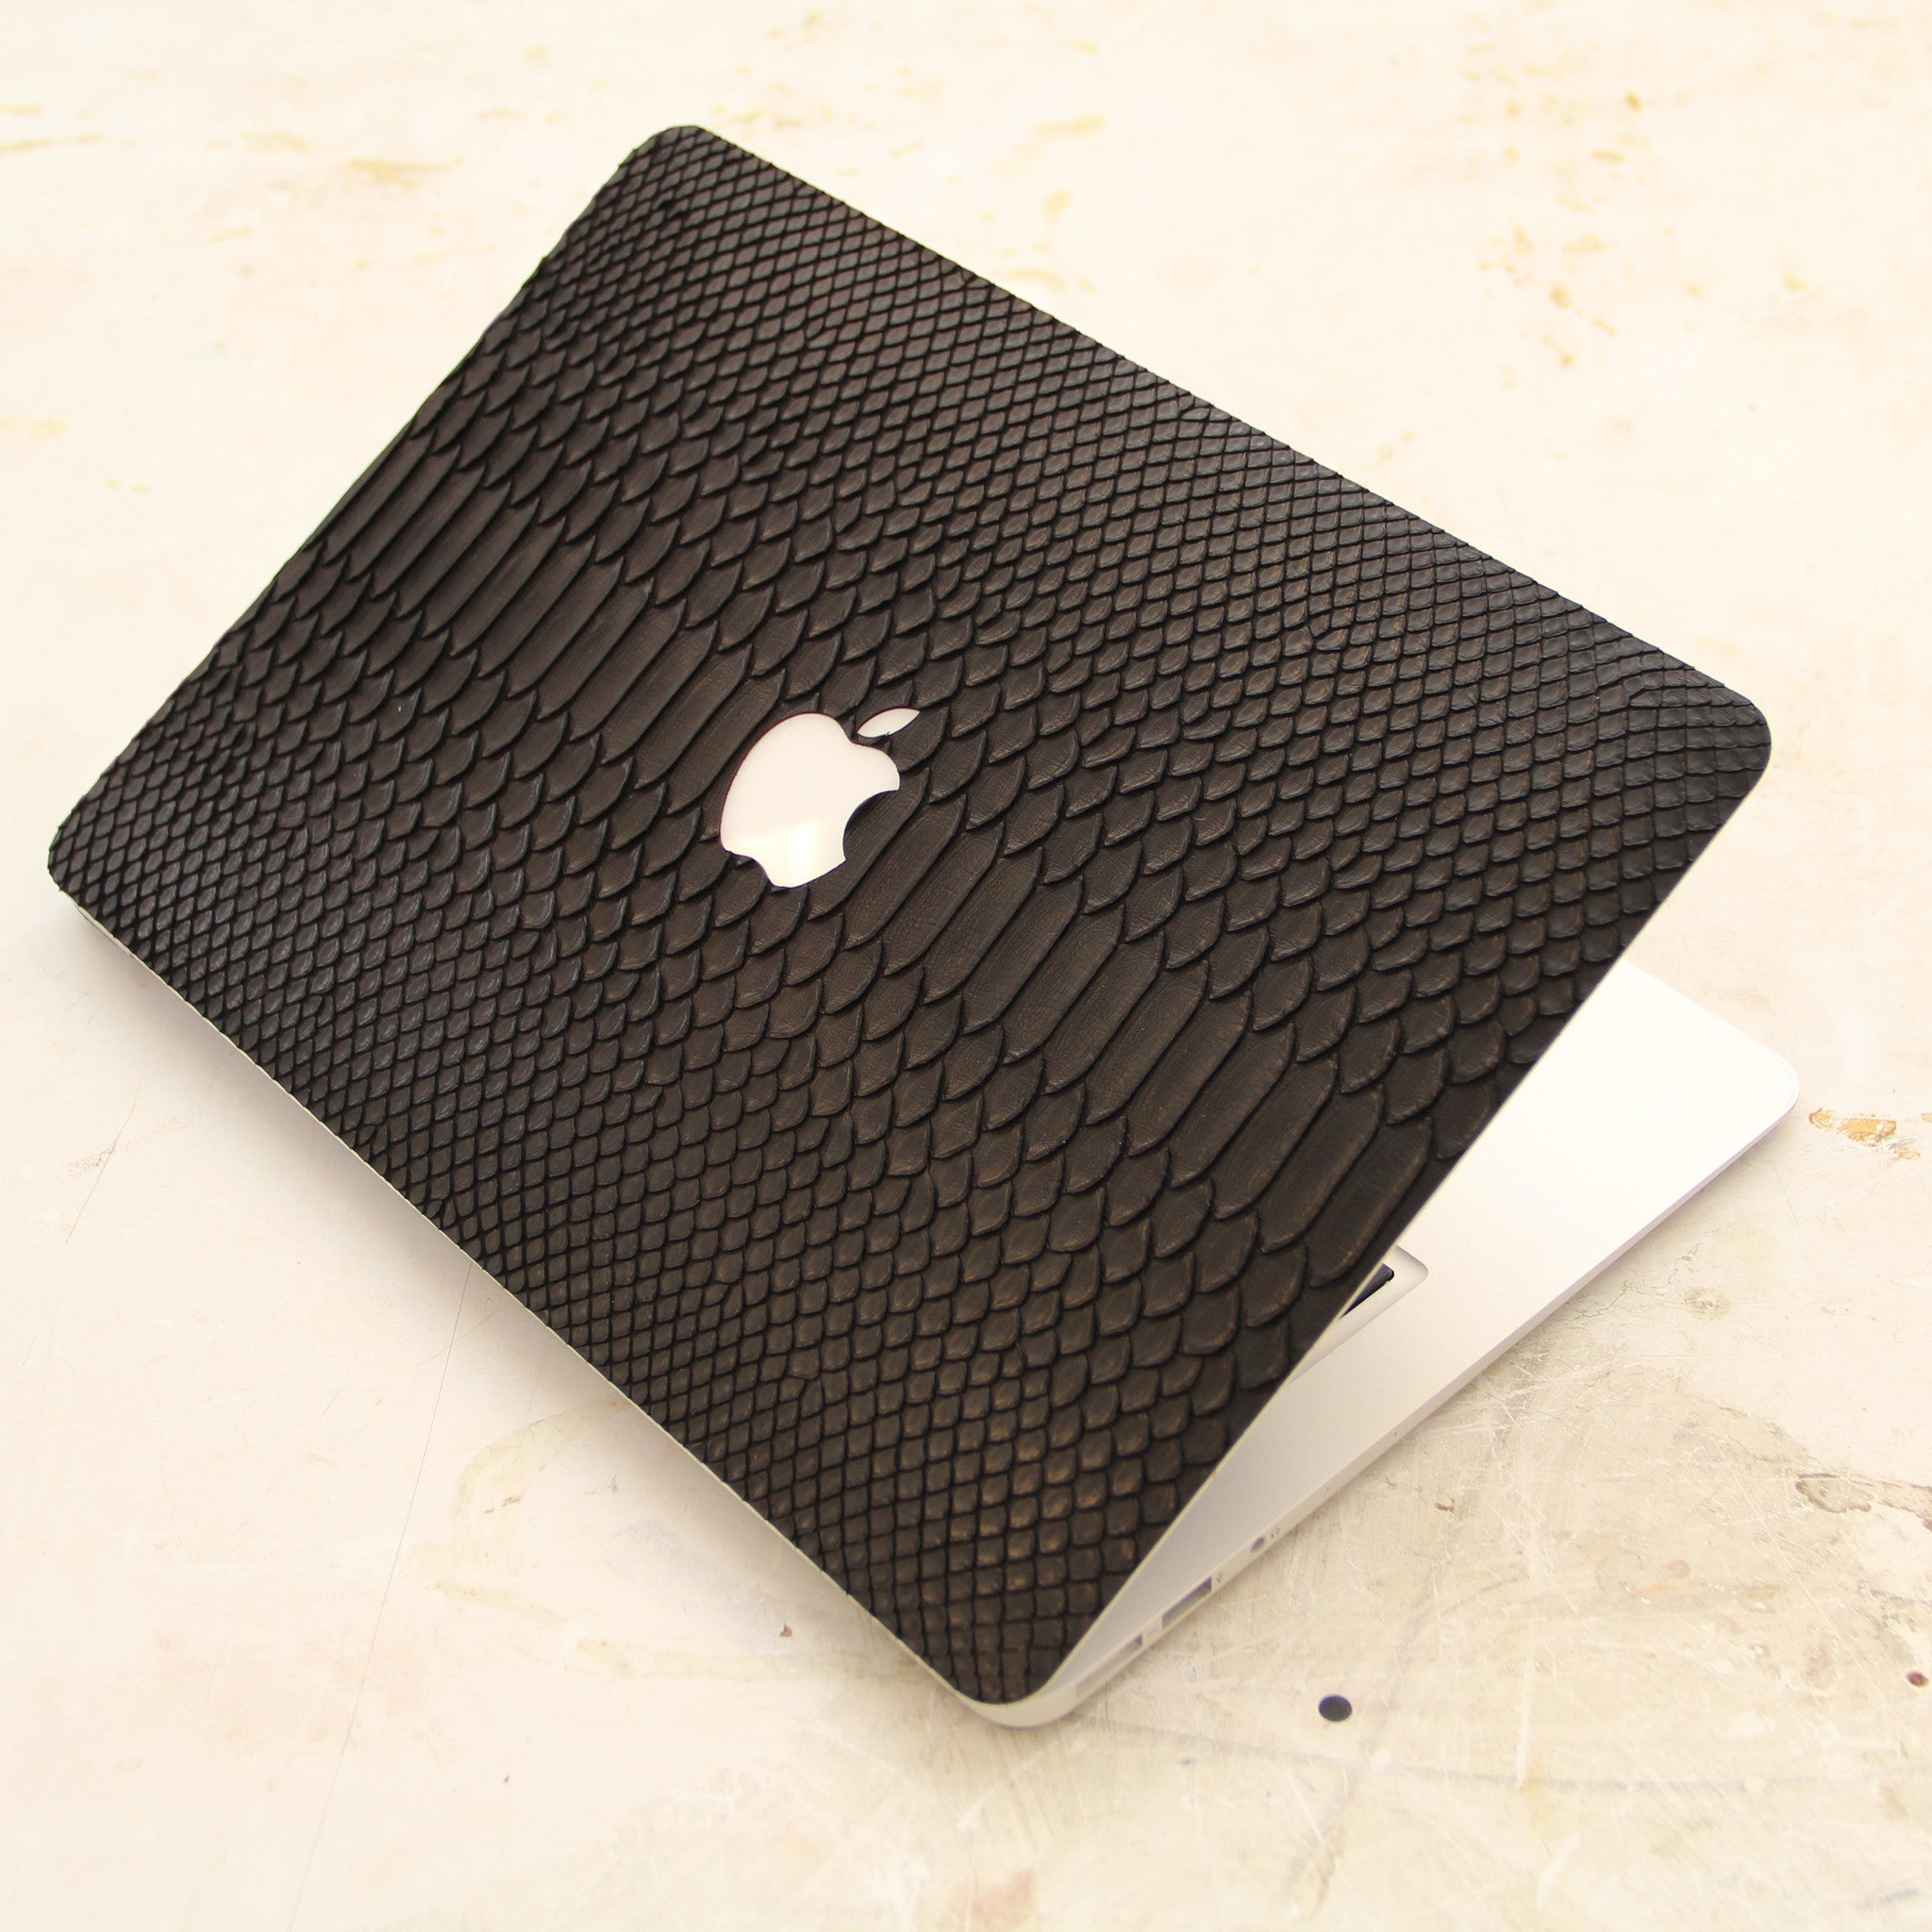 Black Python MacBook Leather Cover